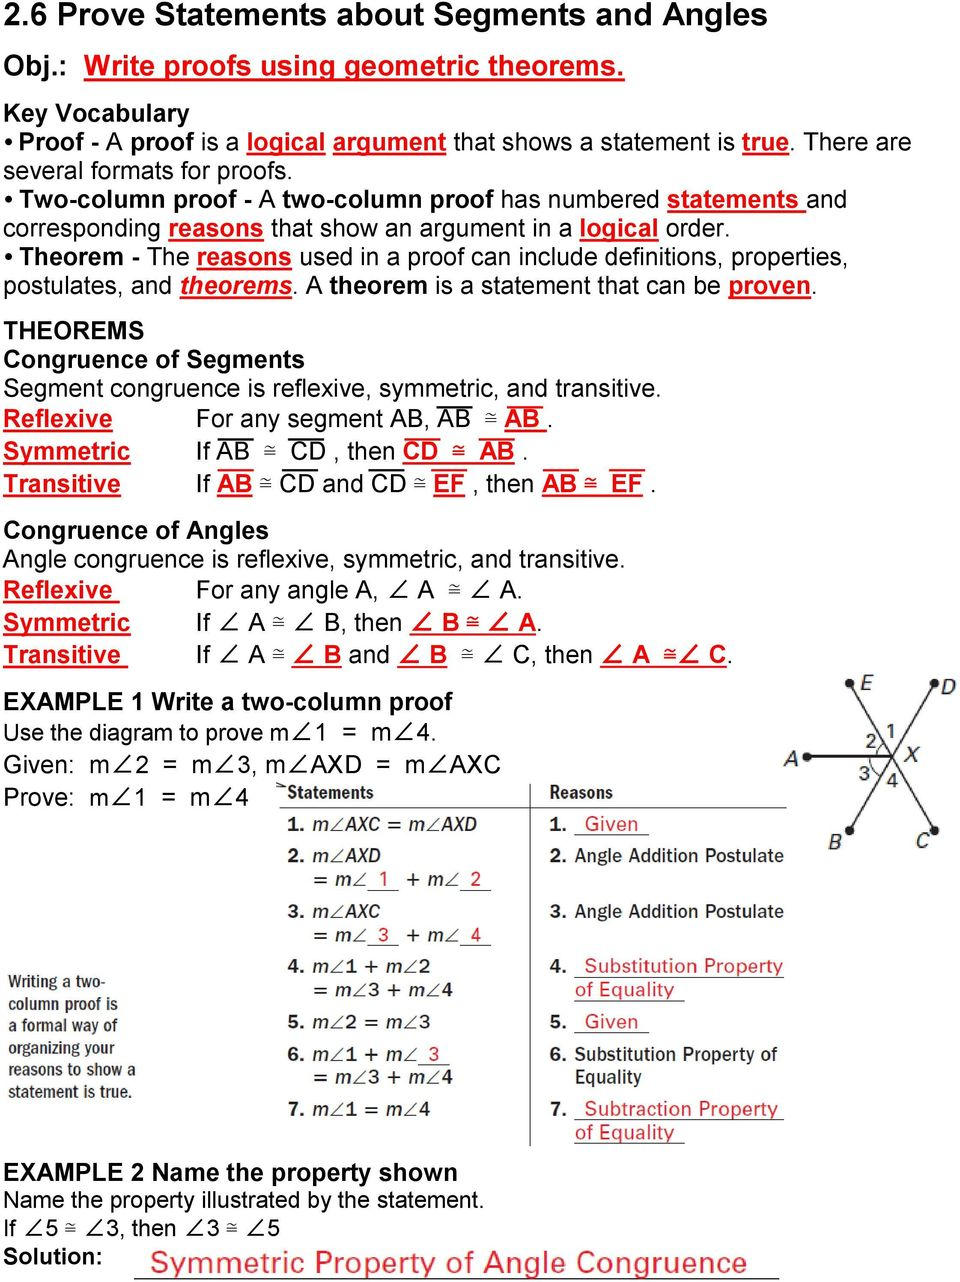 Theorem - The reasons used in a proof can include definitions, properties, postulates, and theorems. A theorem is a statement that can be proven.